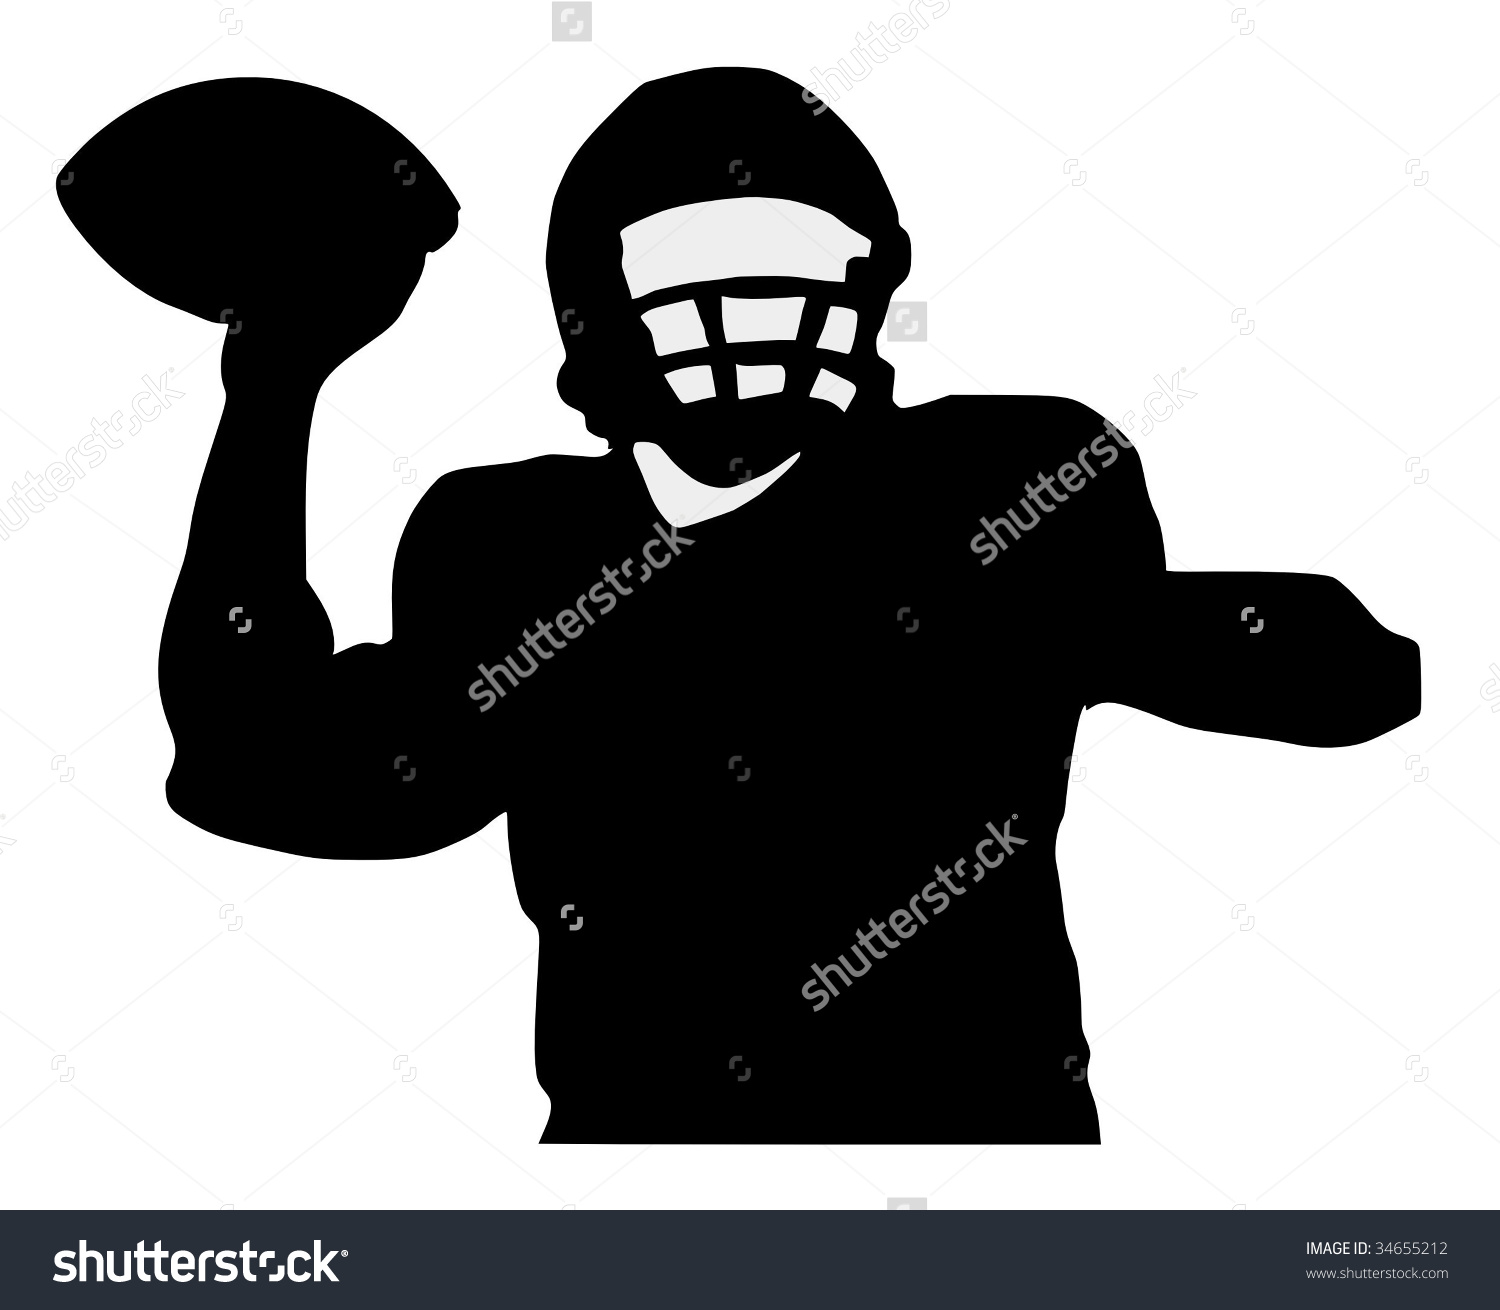 silhouette football player stock vector 34655212